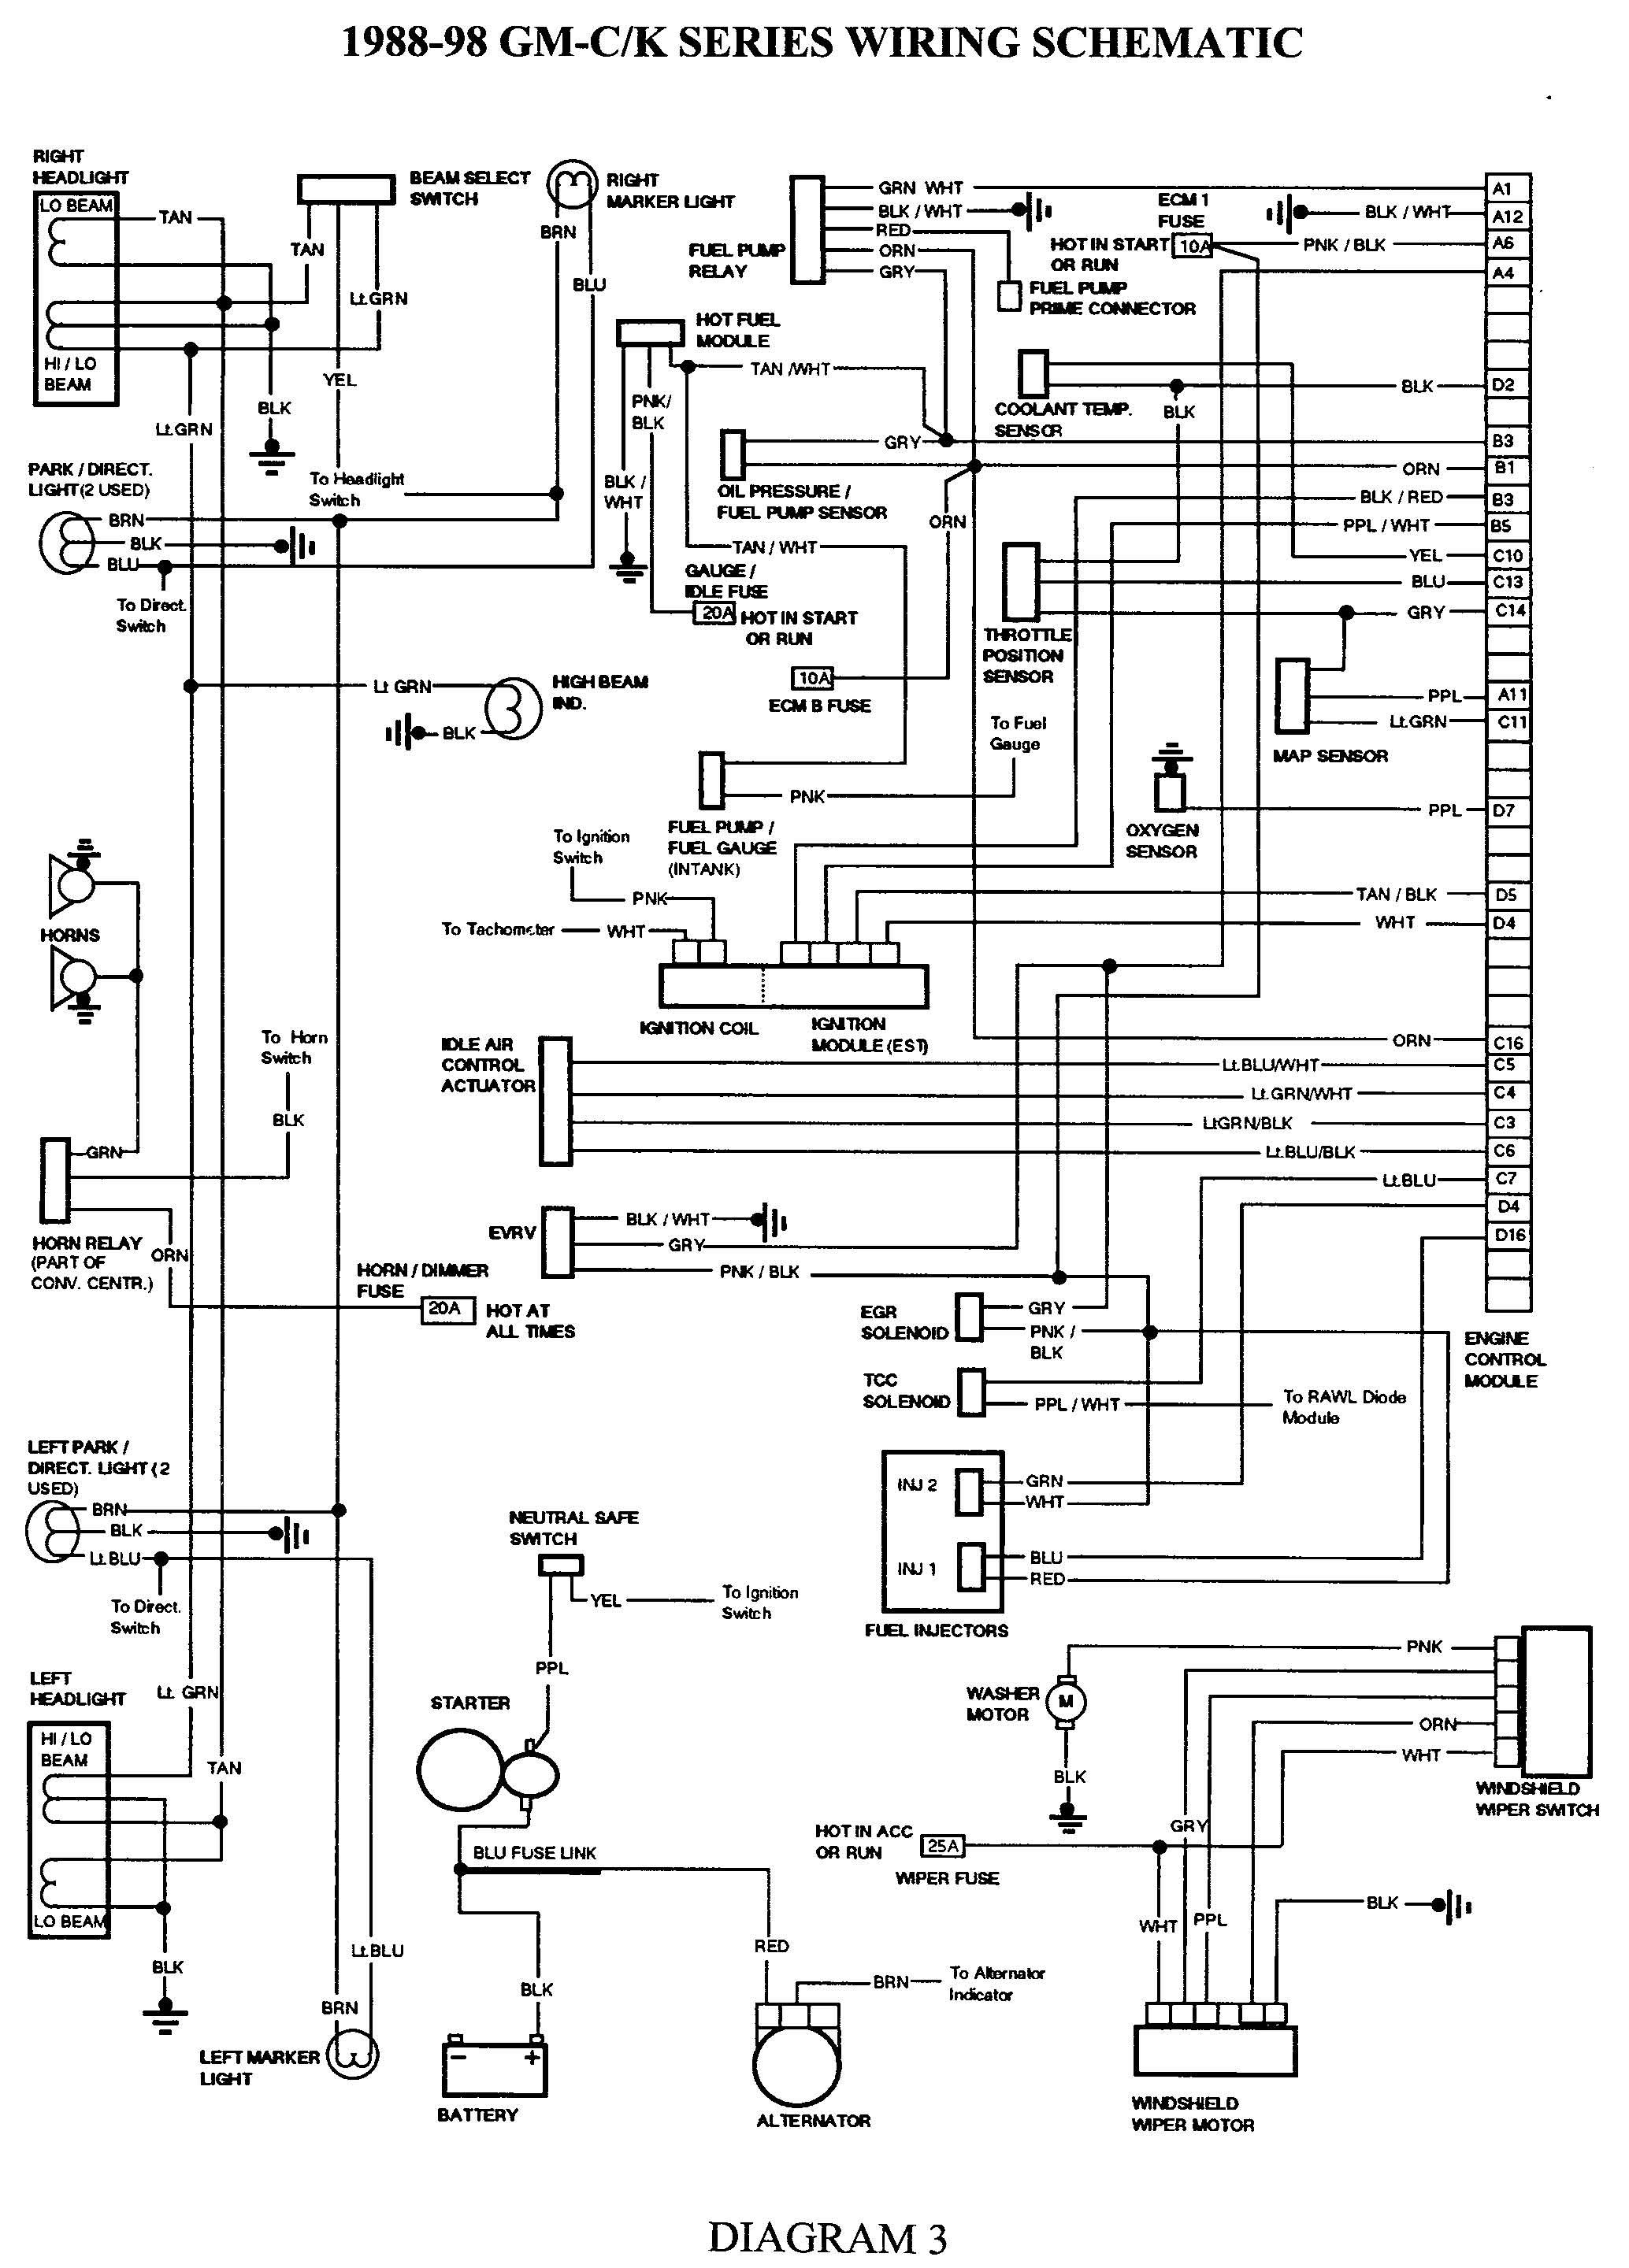 b2f2e5dbdc07dada83ef514f6d4ce3d4 gmc truck wiring diagrams on gm wiring harness diagram 88 98 kc gm truck wiring harness at crackthecode.co